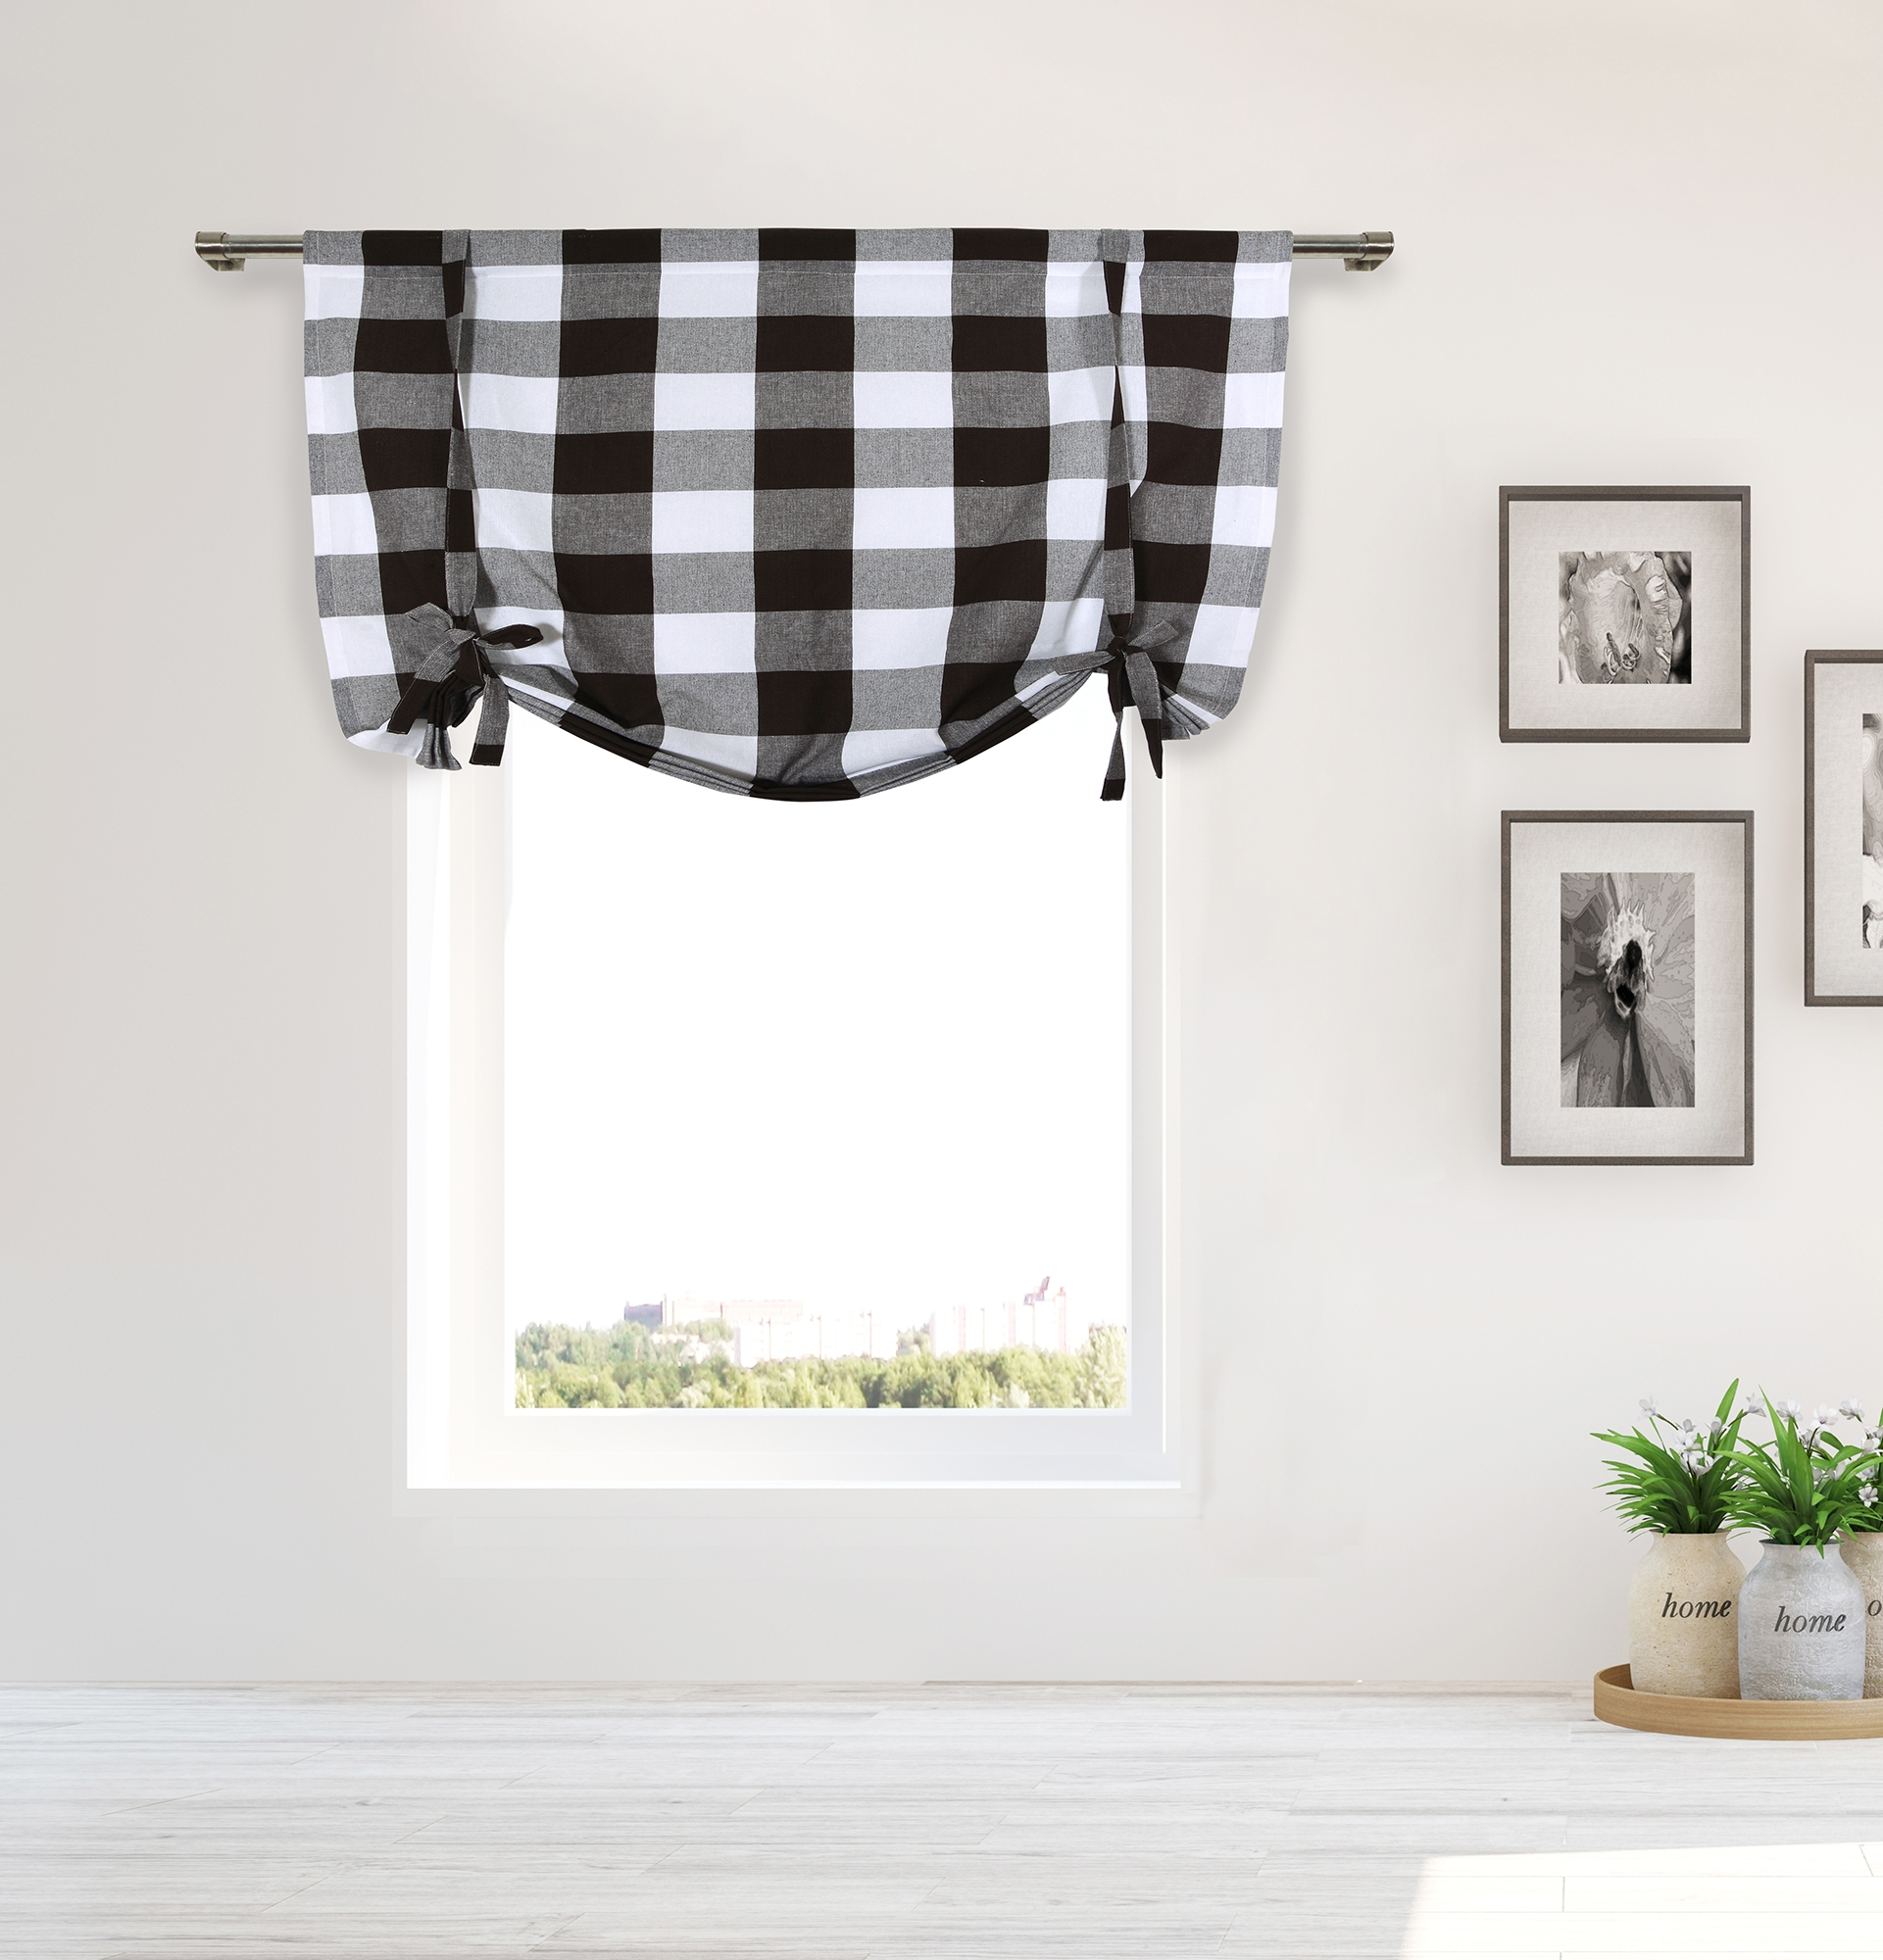 Details About Plaid Gingham Checkered 100% Cotton Blend Kitchen Chocolate Window Curtain Shade Throughout Cotton Blend Classic Checkered Decorative Window Curtains (View 14 of 20)